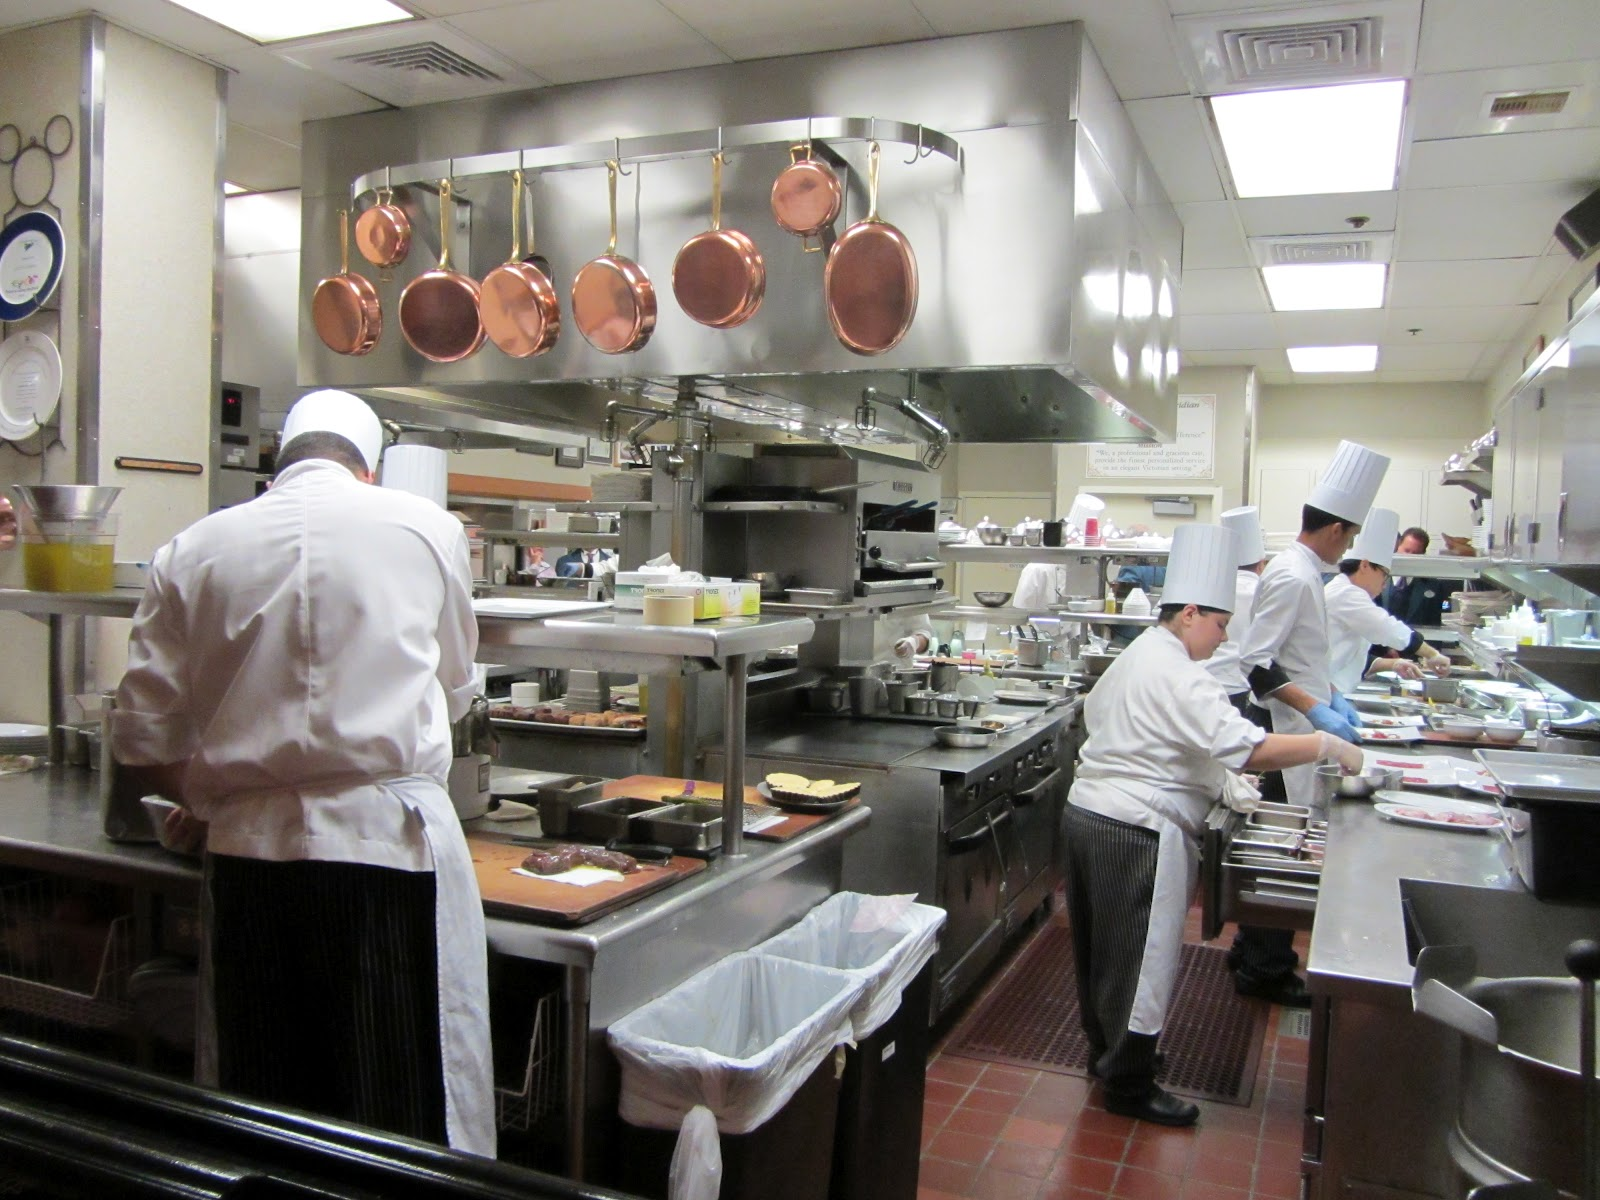 Restaurant Kitchen Chefs restaurant kitchen chefs